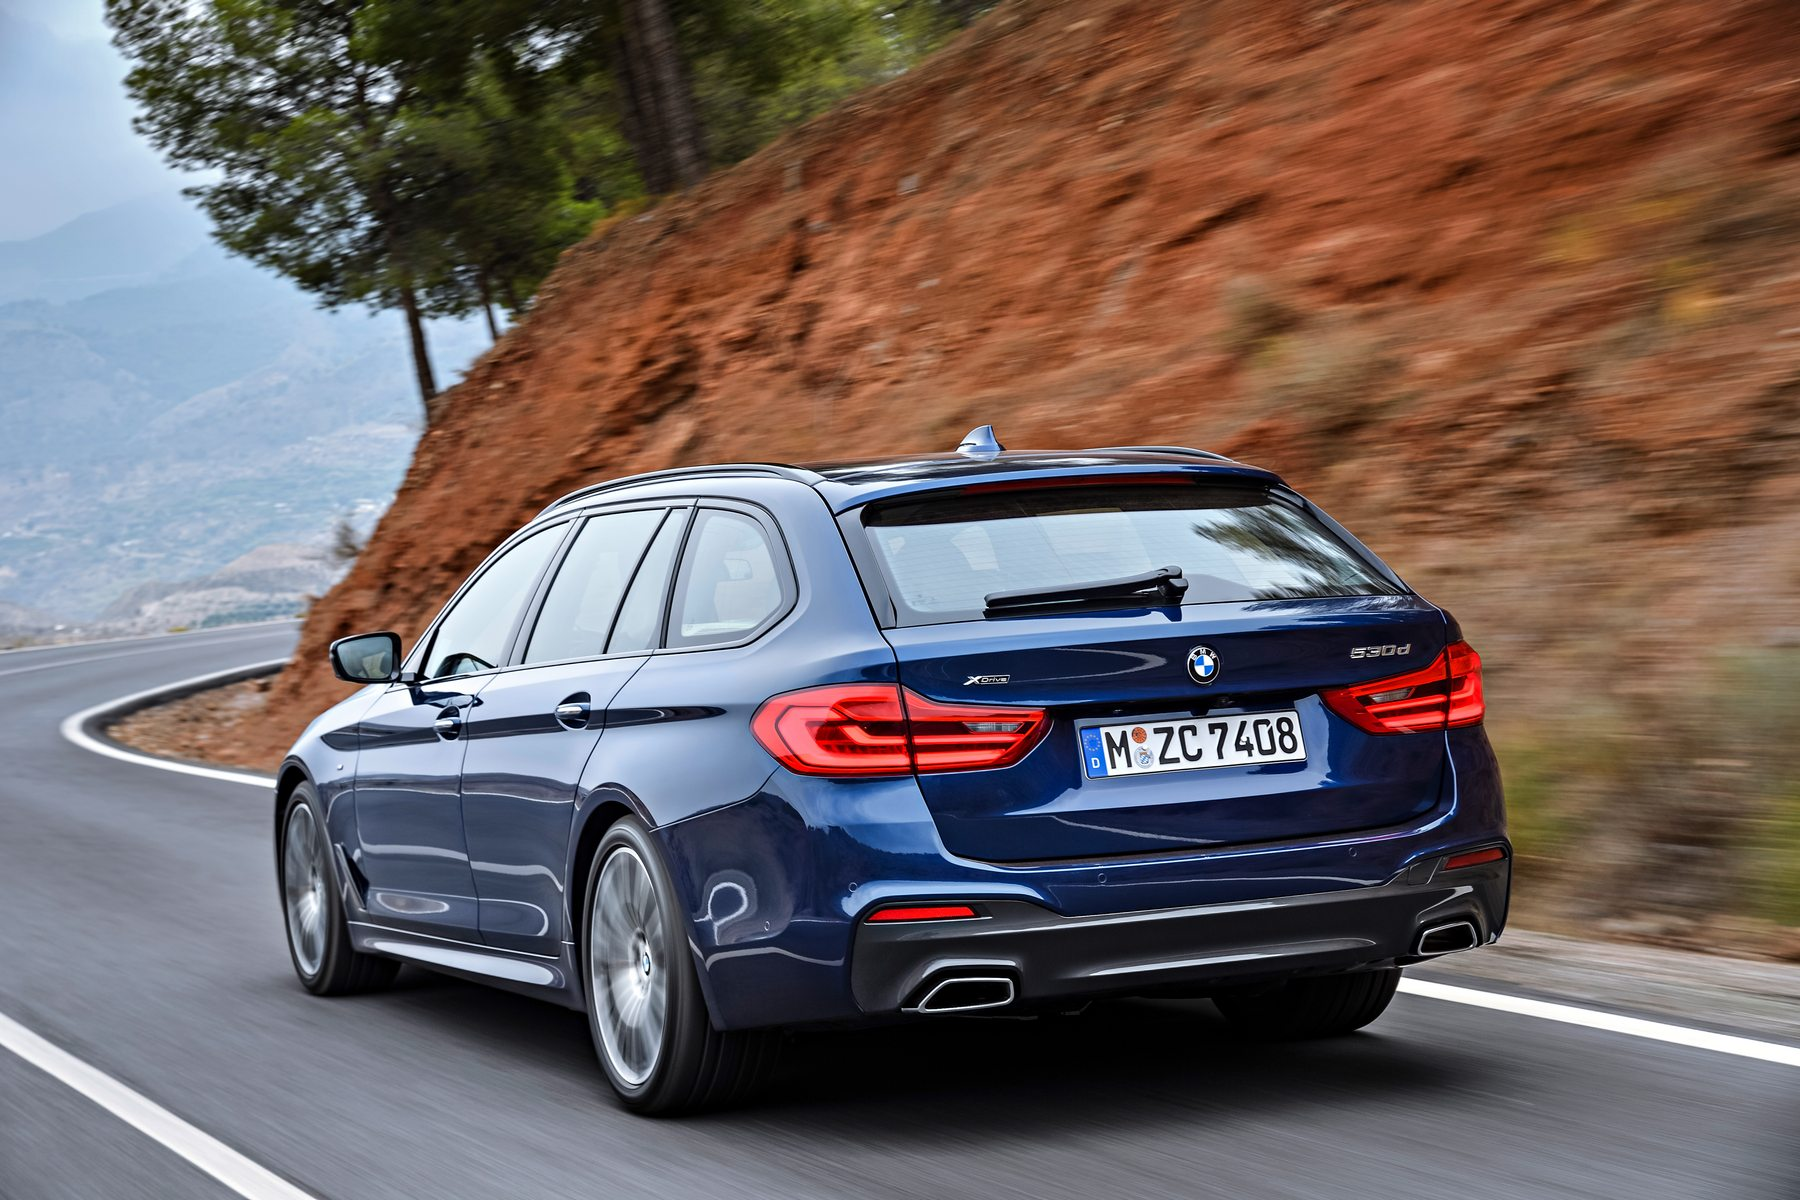 2017 BMW 530d xDrive Touring Image 21